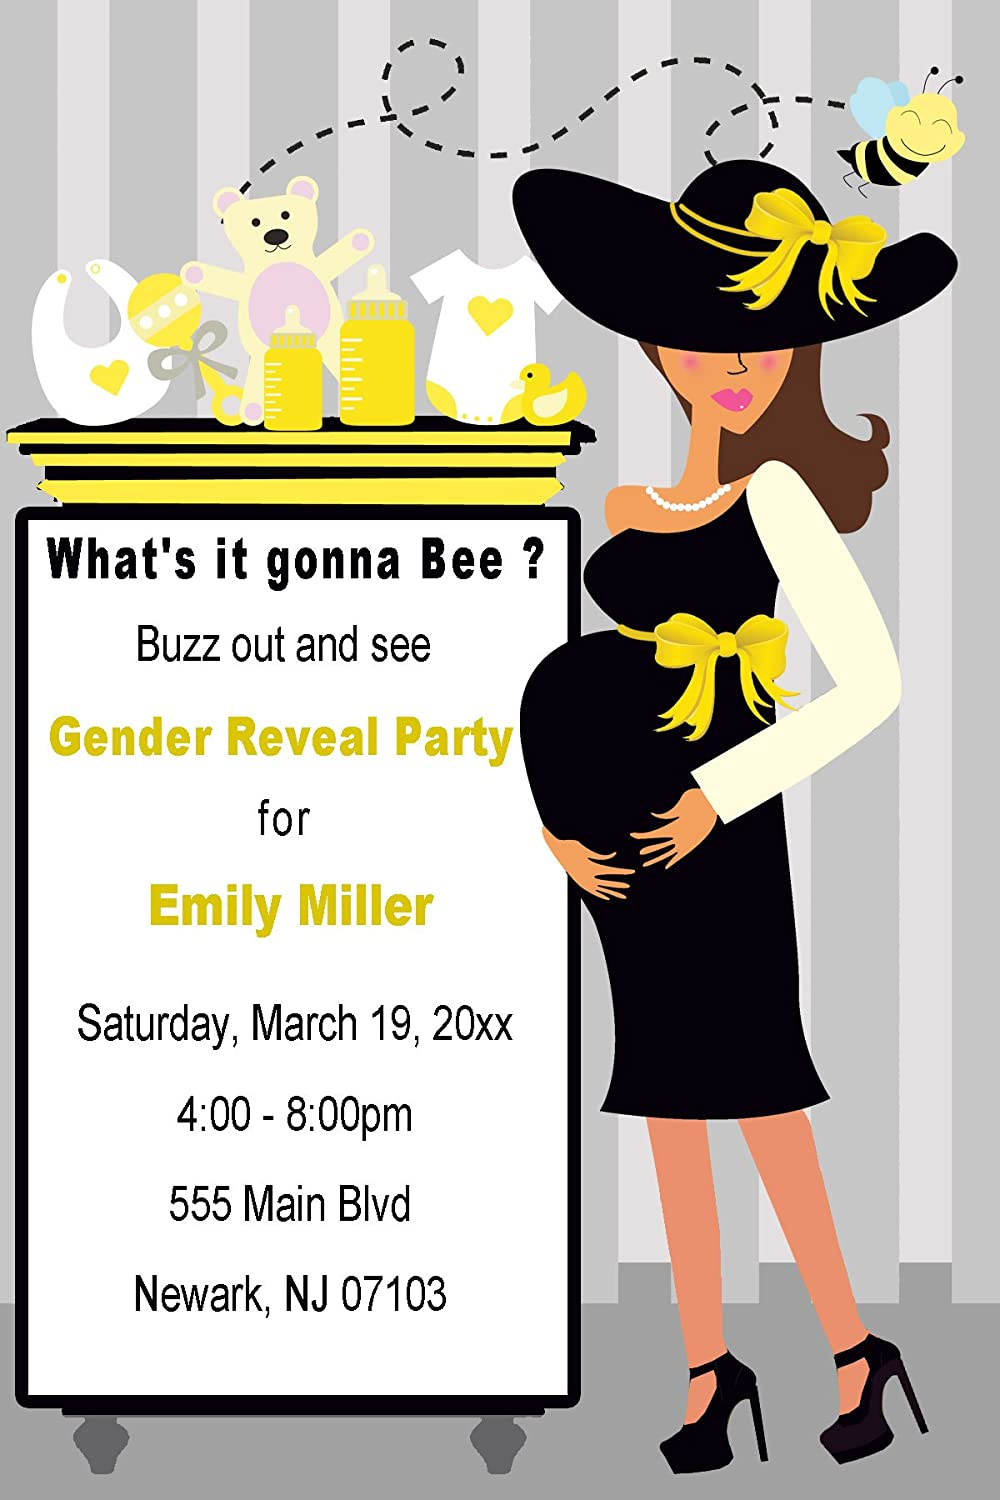 Amazon.com: 30 Invitations Yellow Black Grey Whats It Gonna Bee ...